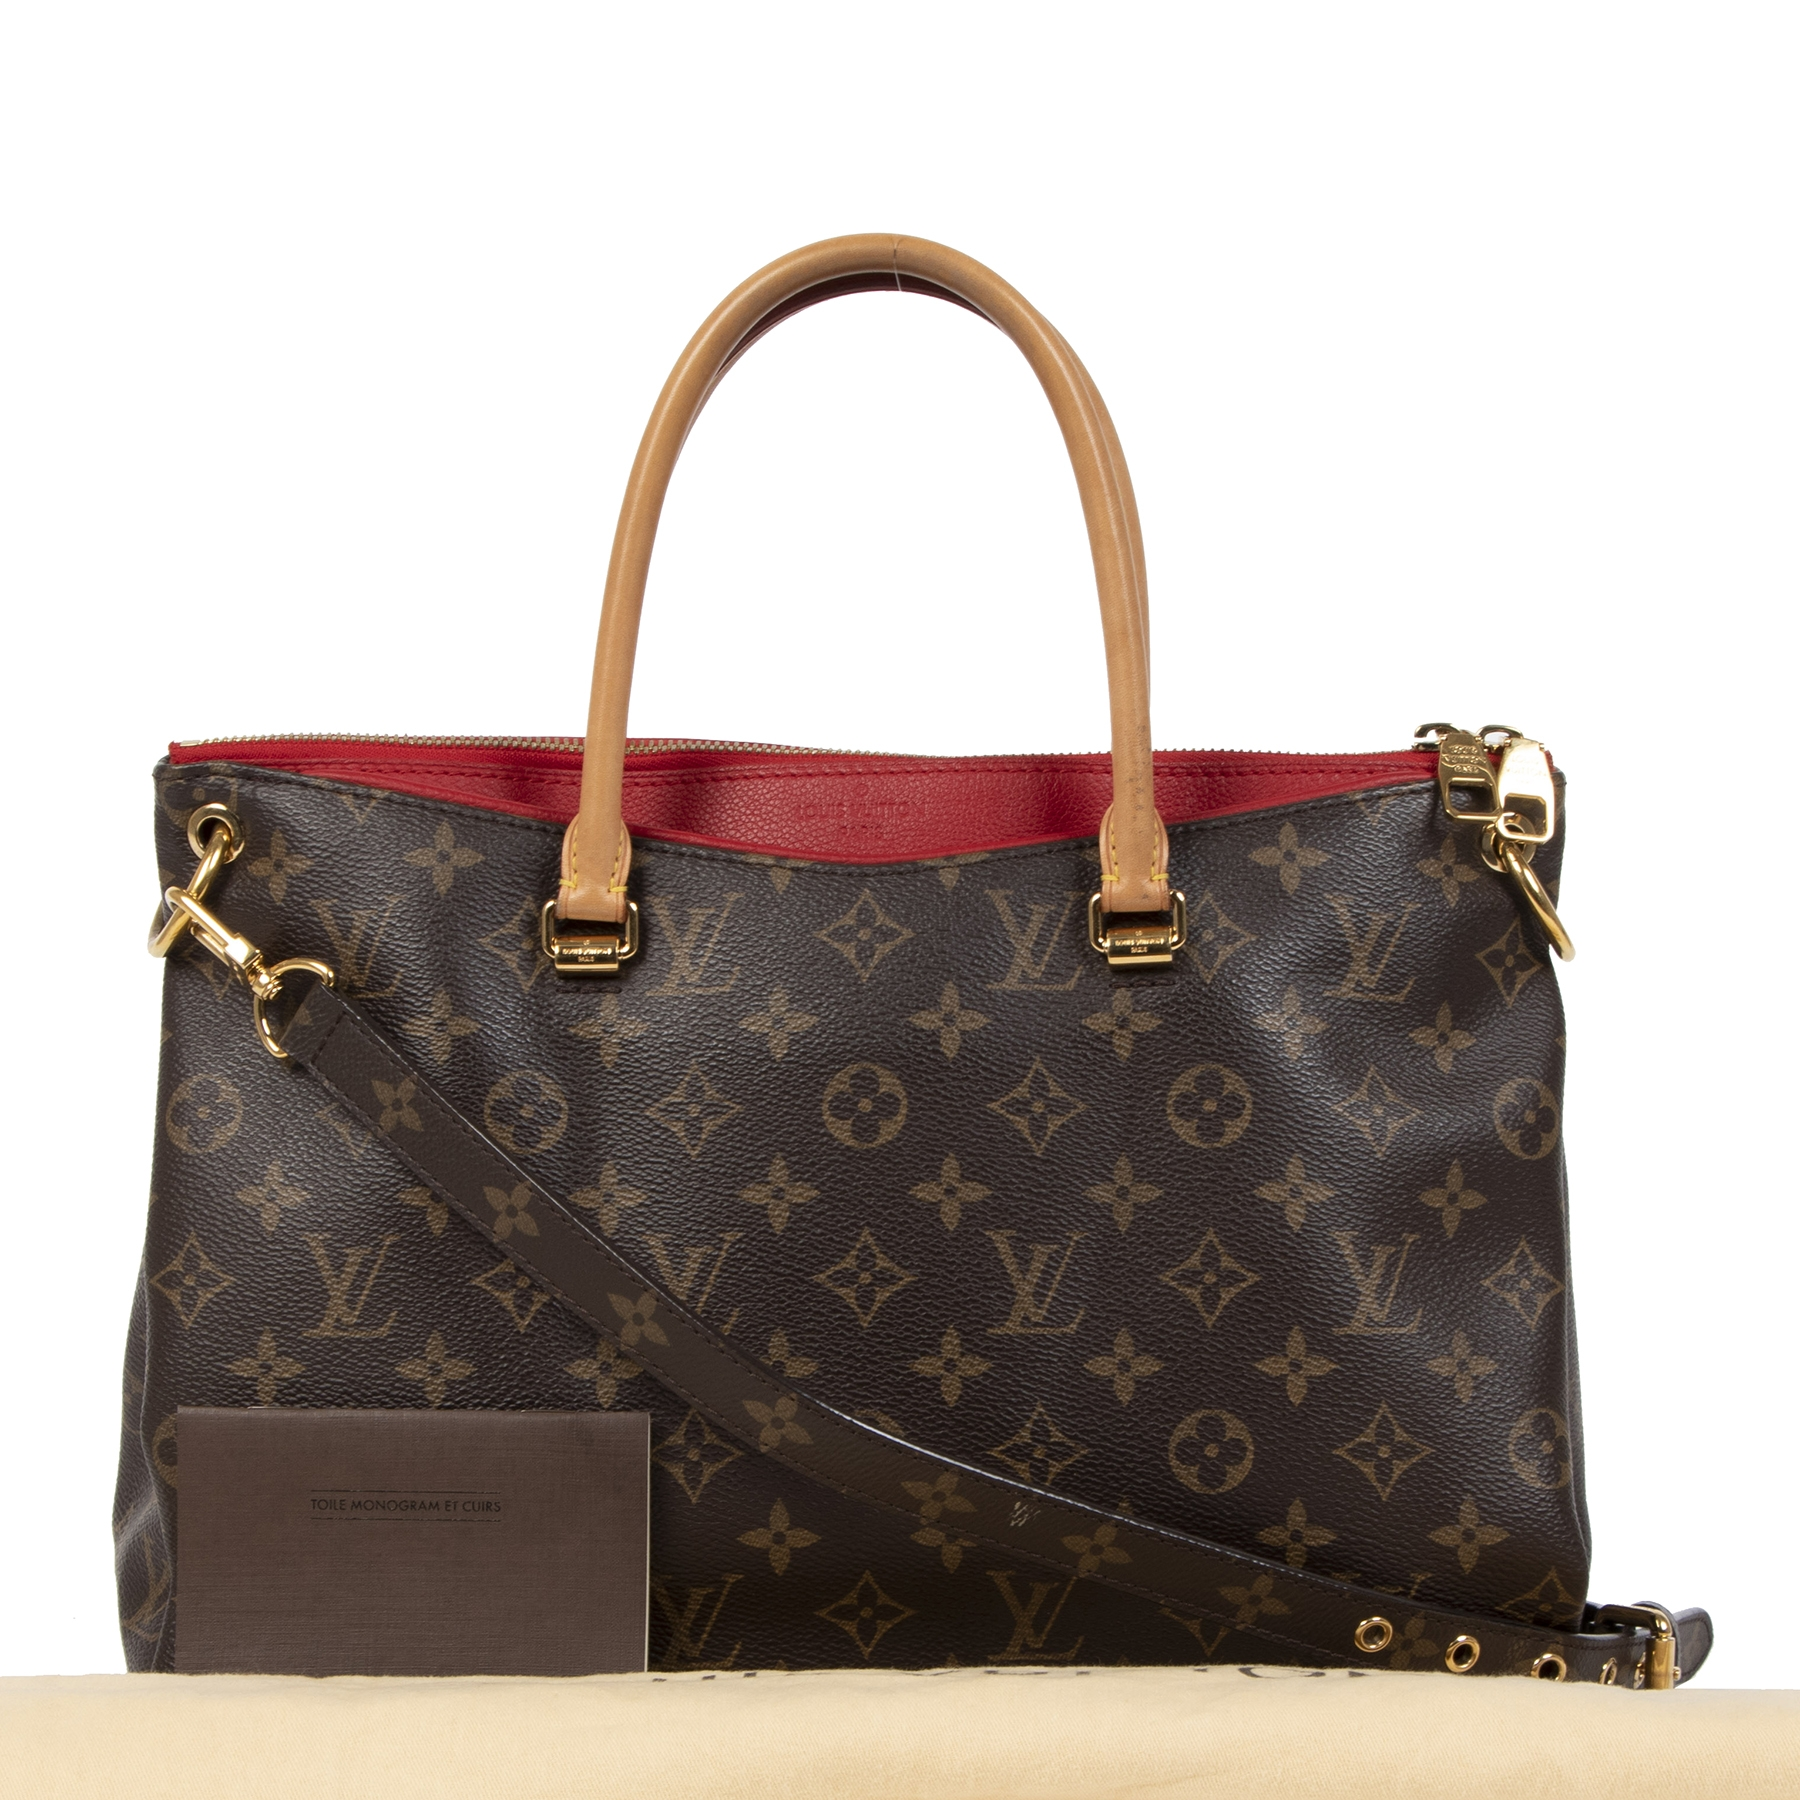 Buy safe and secure Louis Vuitton Pallas bags at LabelLOV